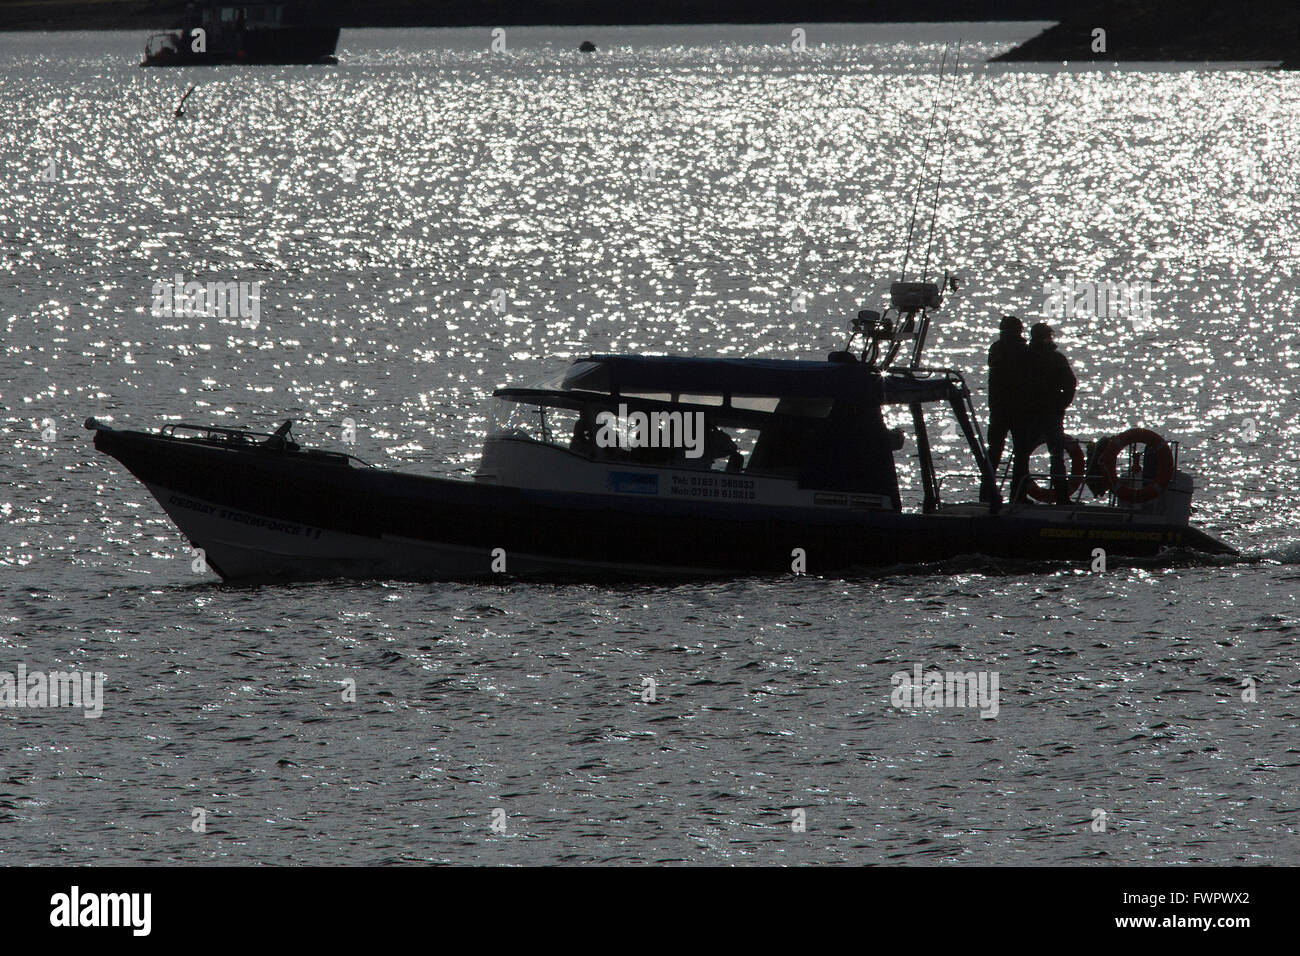 A small boat in silhouette. - Stock Image